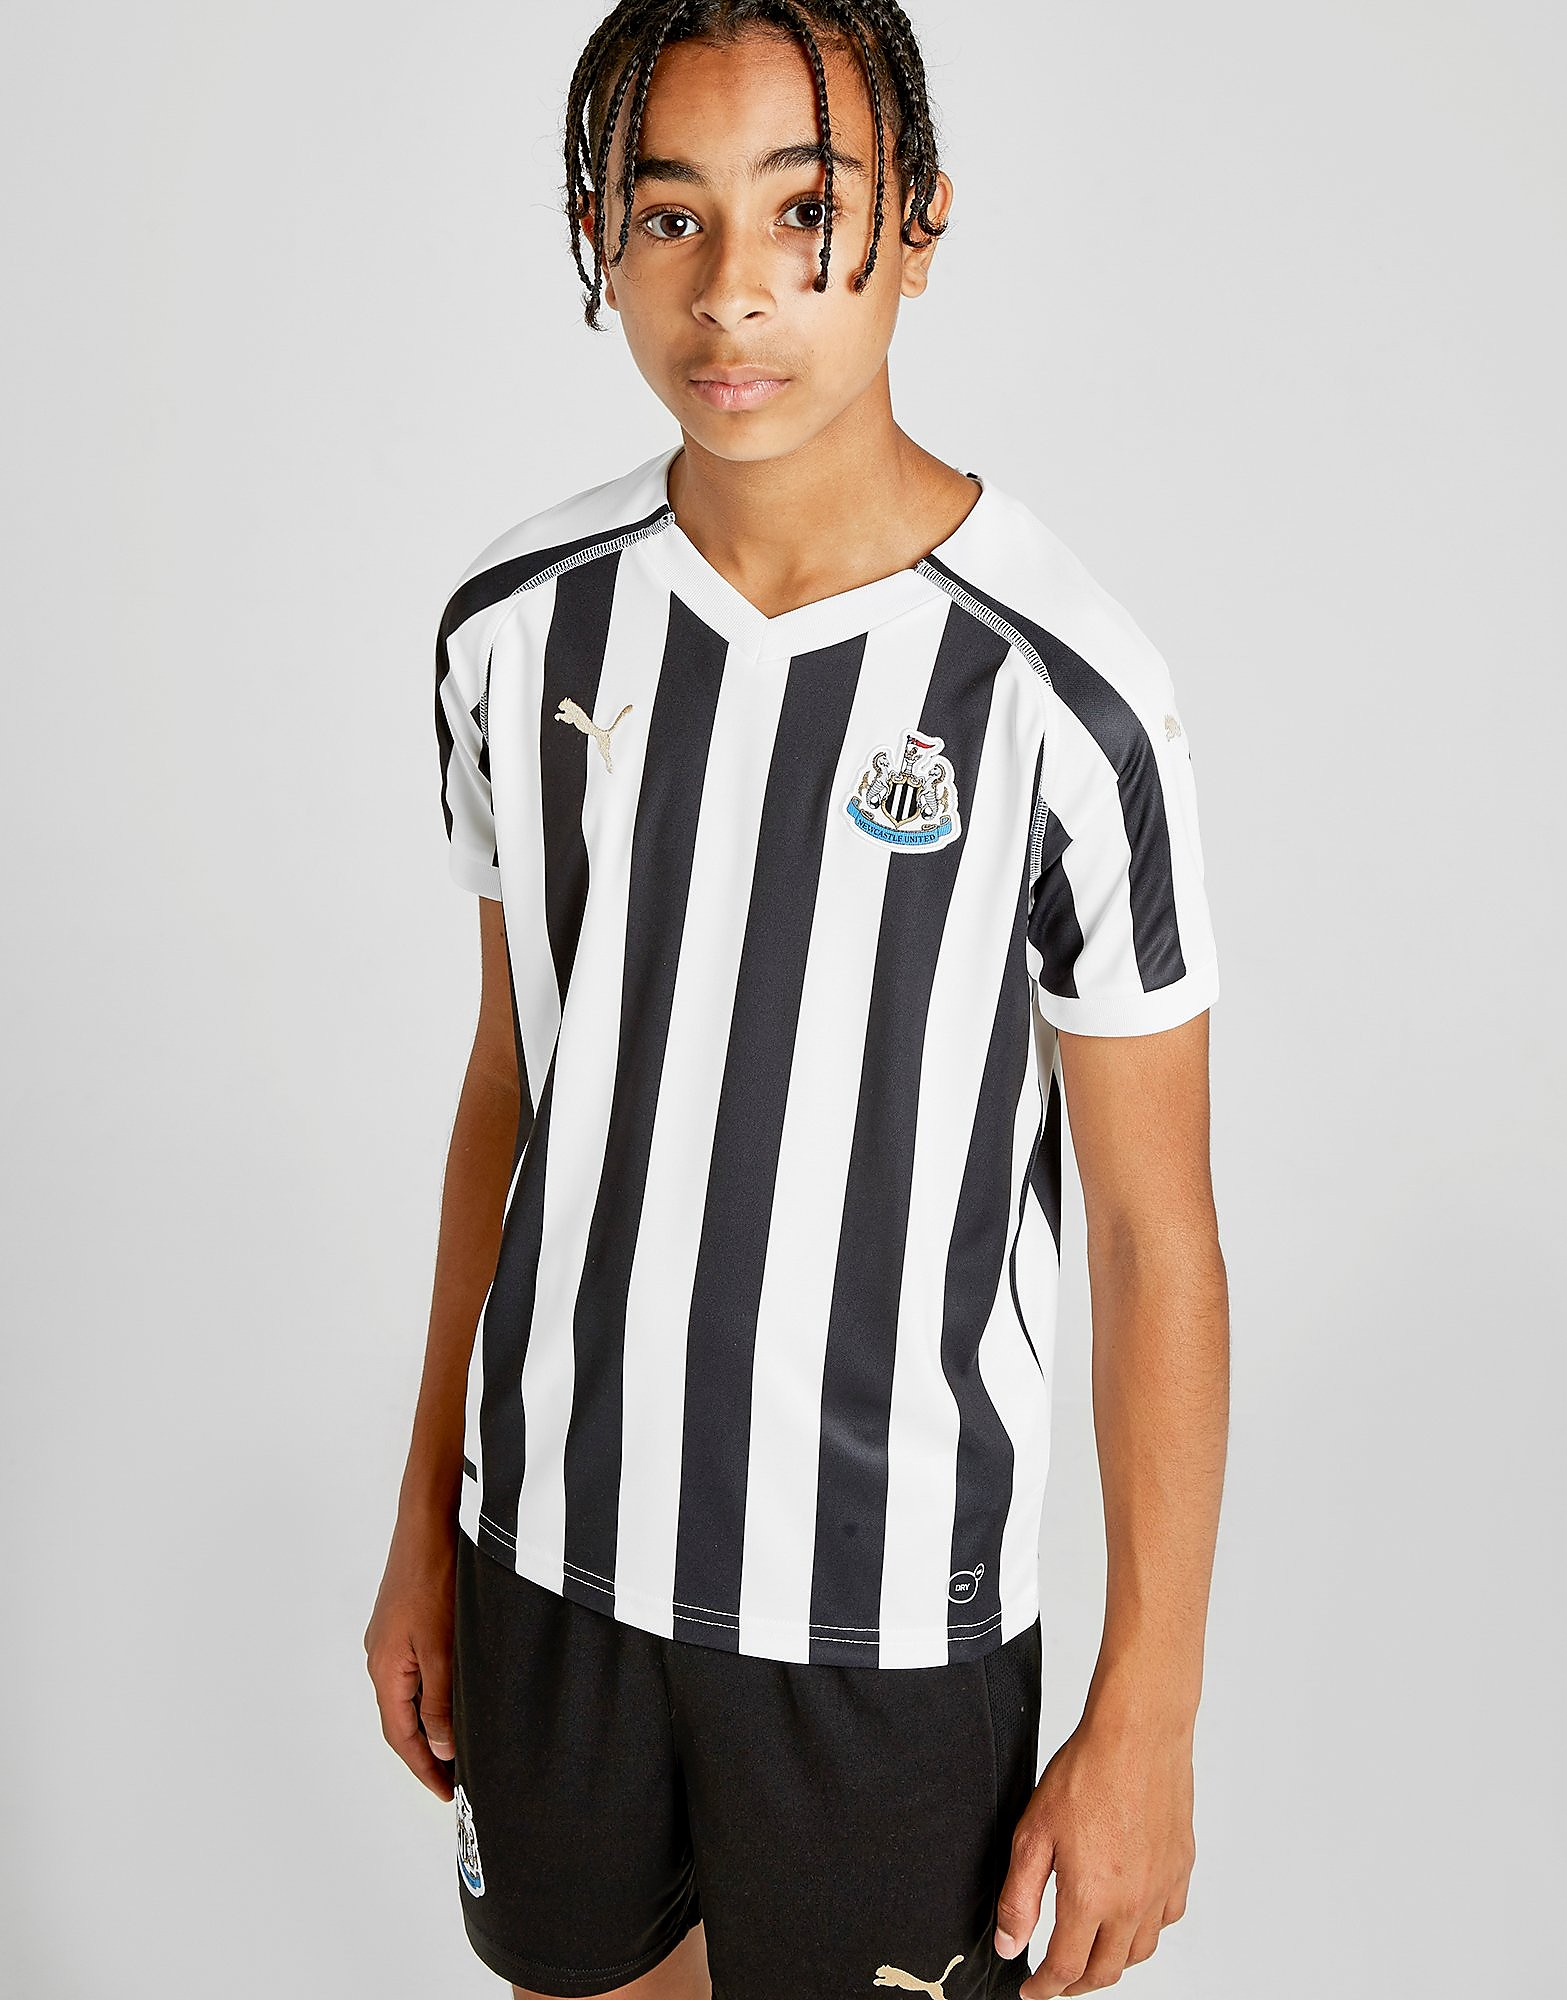 PUMA Newcastle United FC 2018/19 Home Shirt Junior - Zwart - Kind